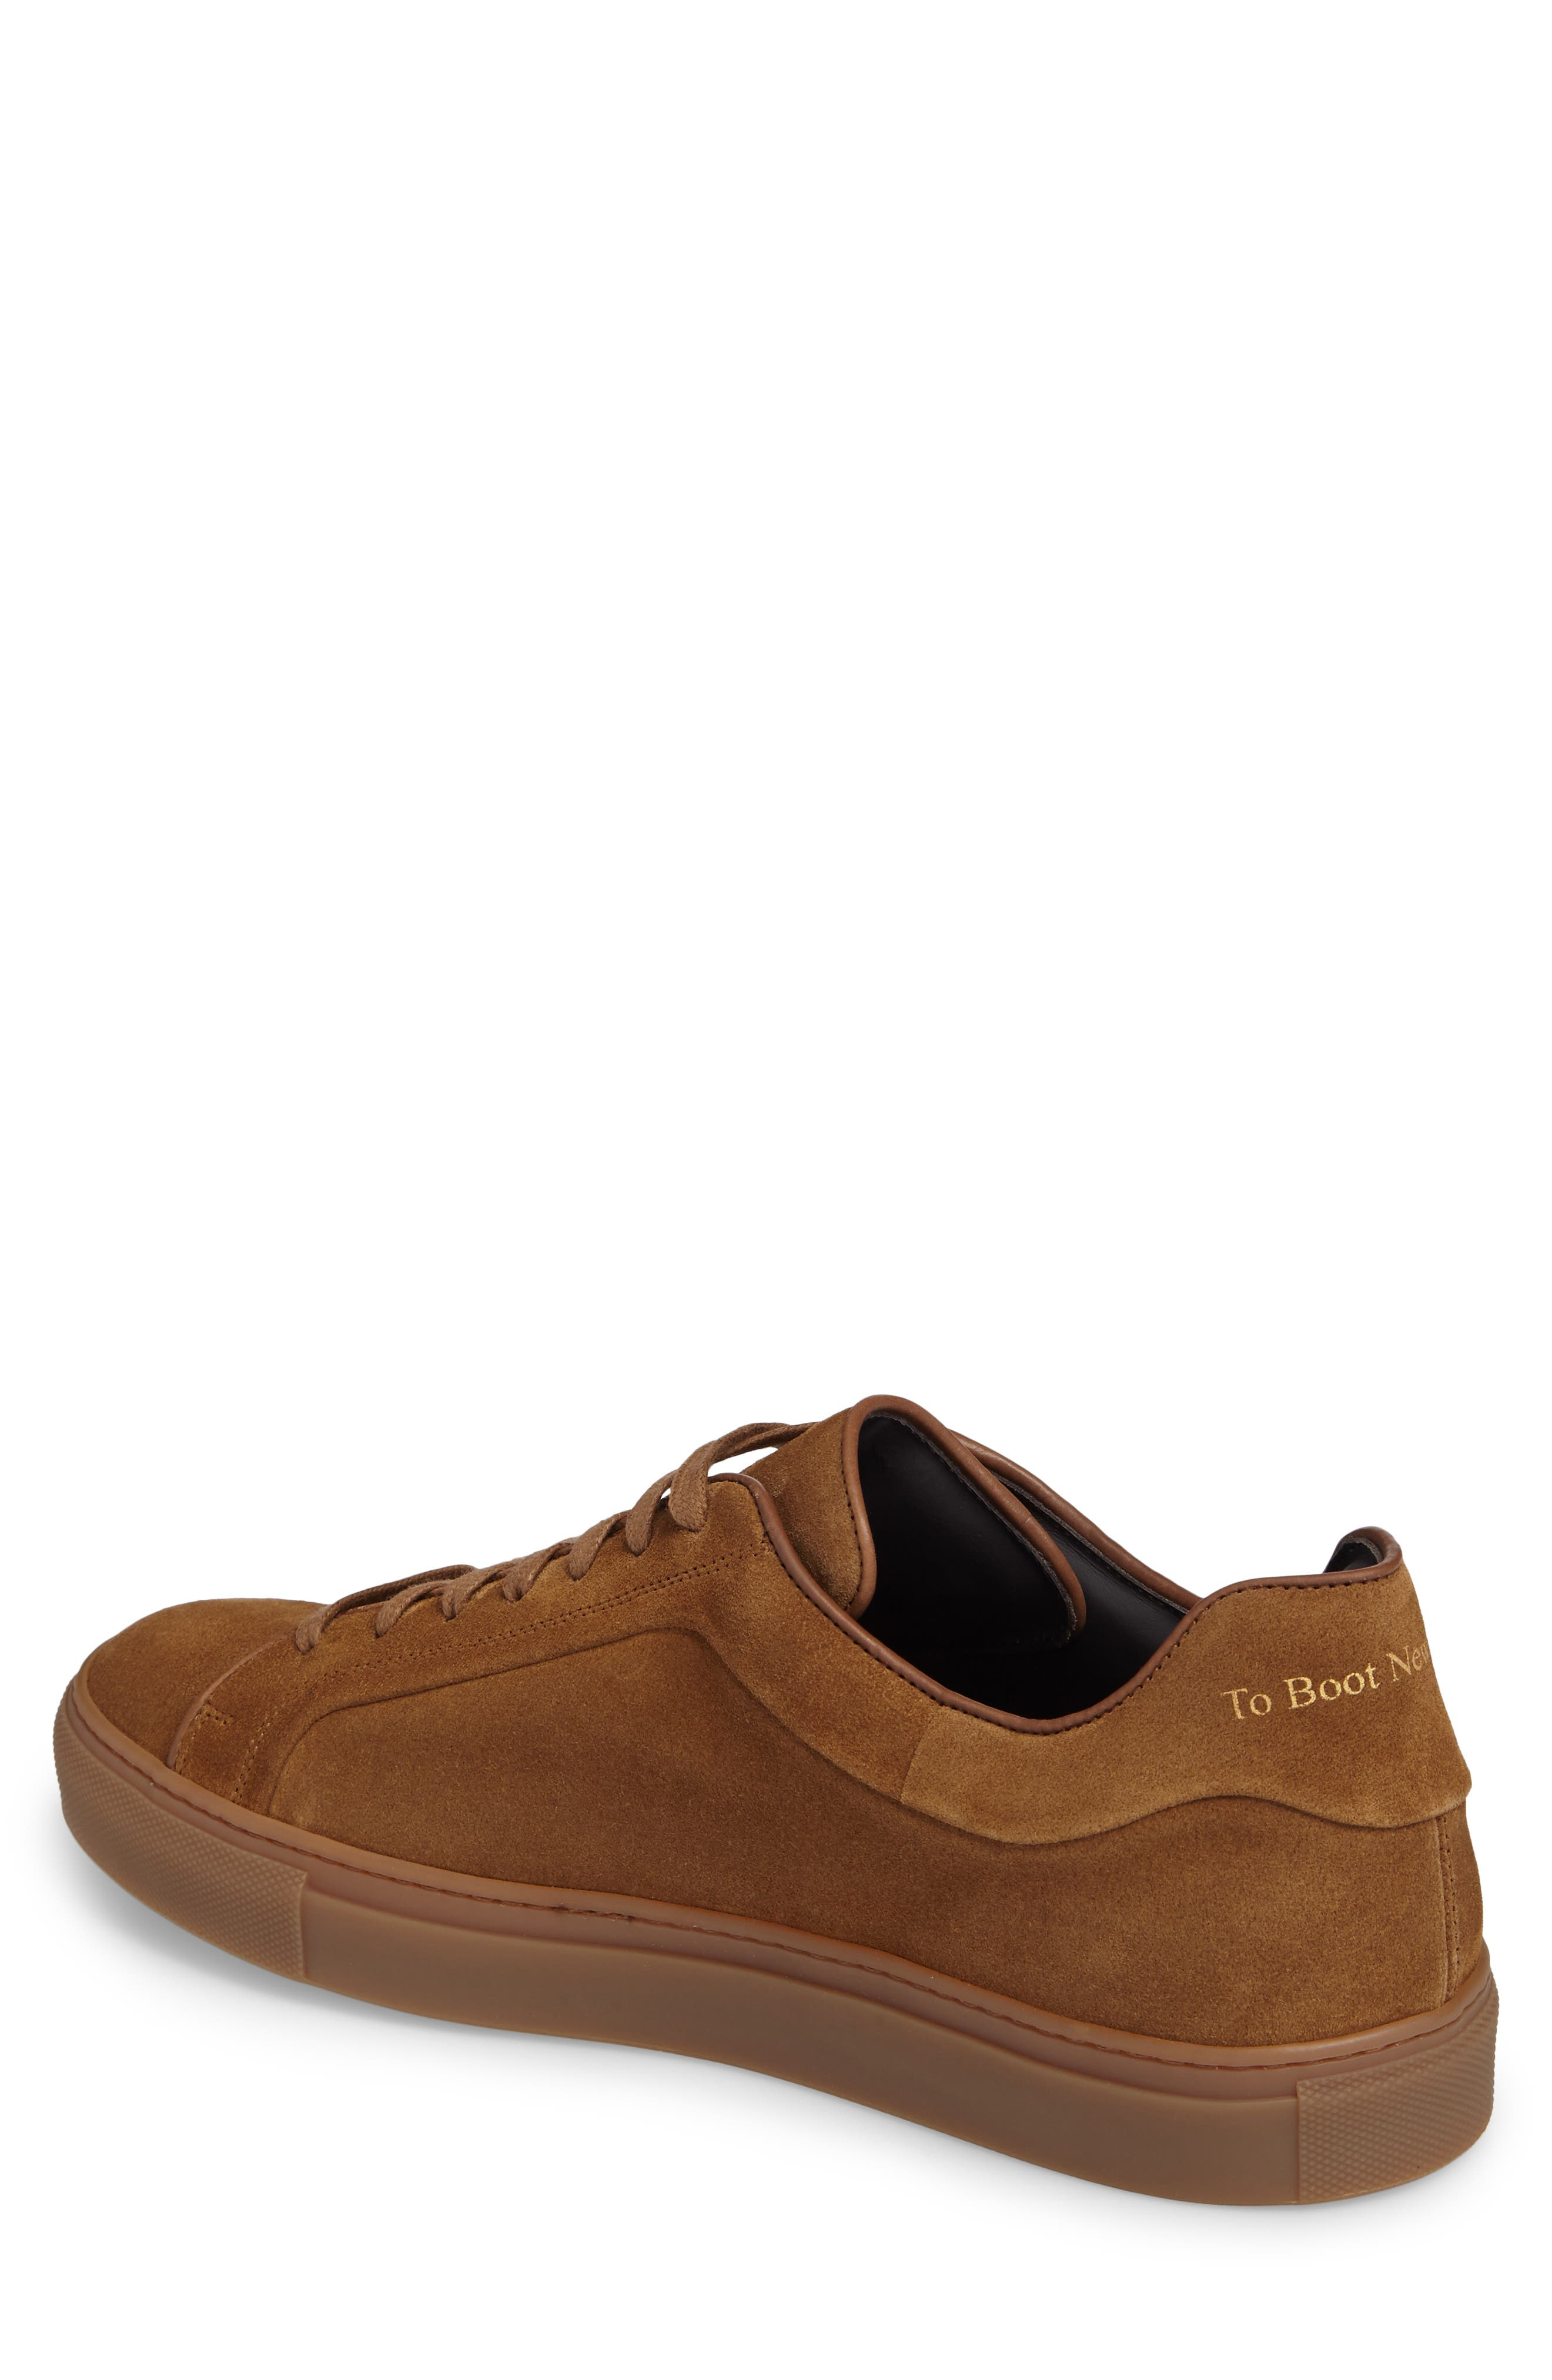 Marshall Sneaker,                             Alternate thumbnail 2, color,                             Brown Suede Leather